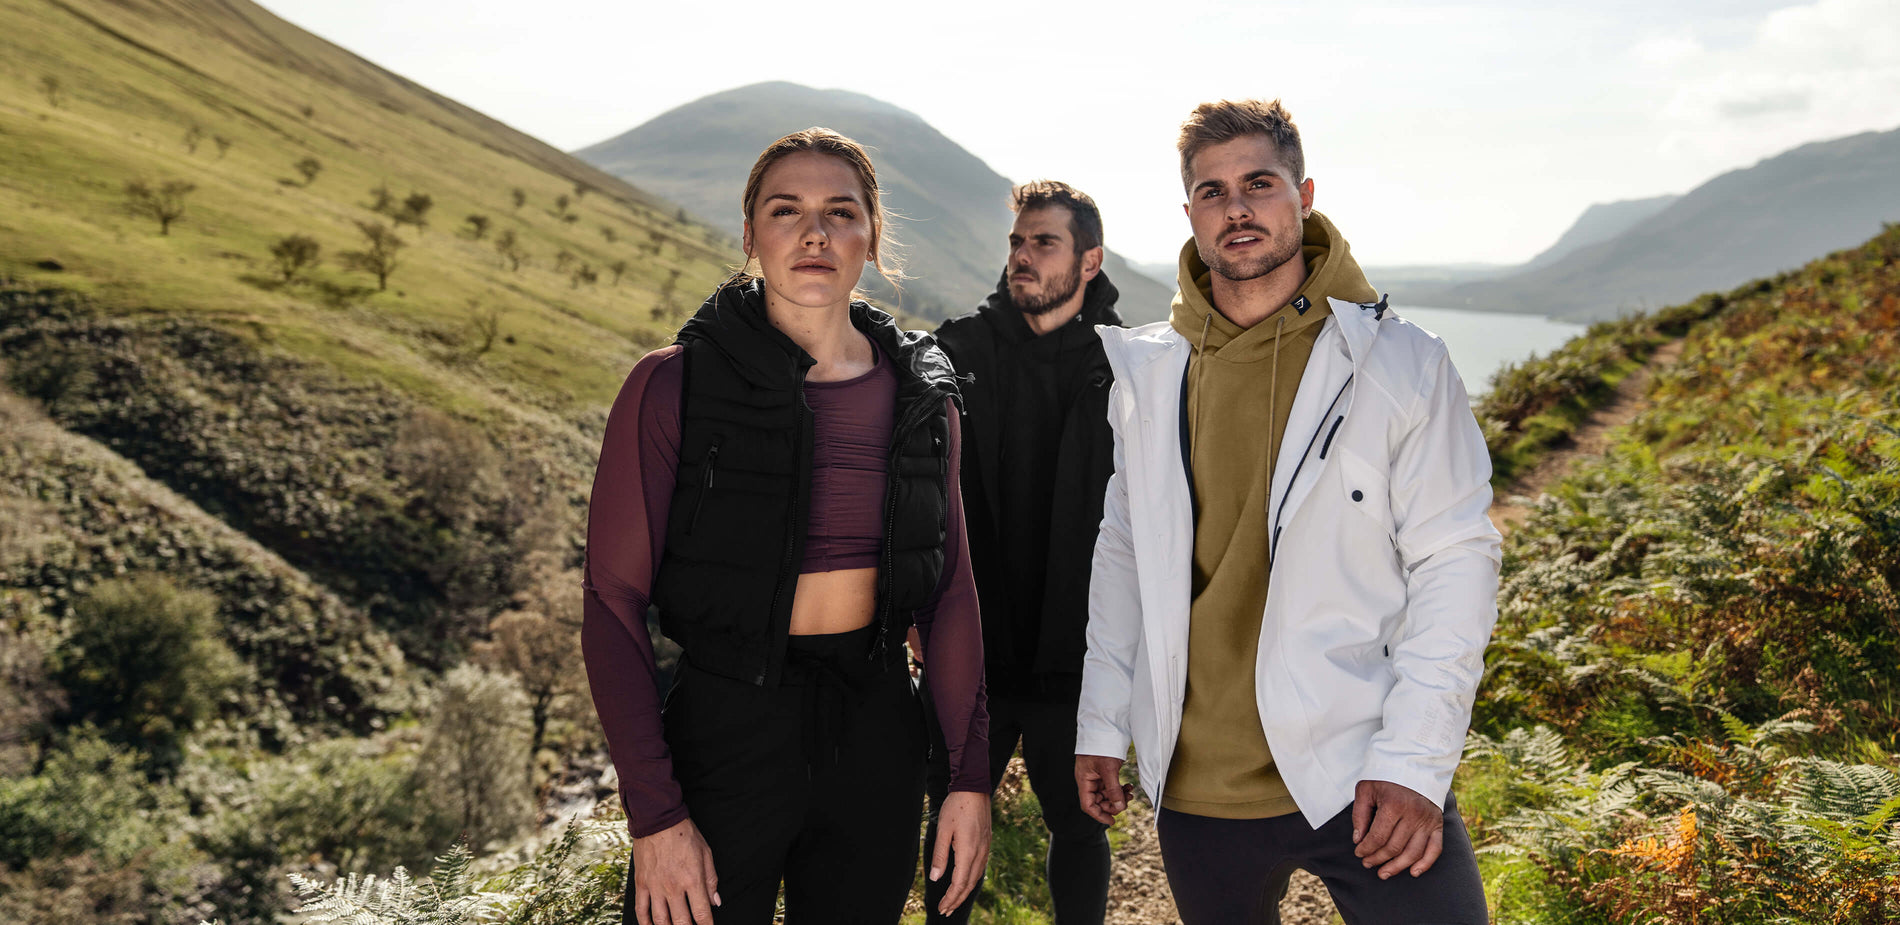 Three Gymshark athletes modelling outerwear in front of a scenic back drop of the lake district. The banner also demonstrates men's and women's layered clothing for cold environment.